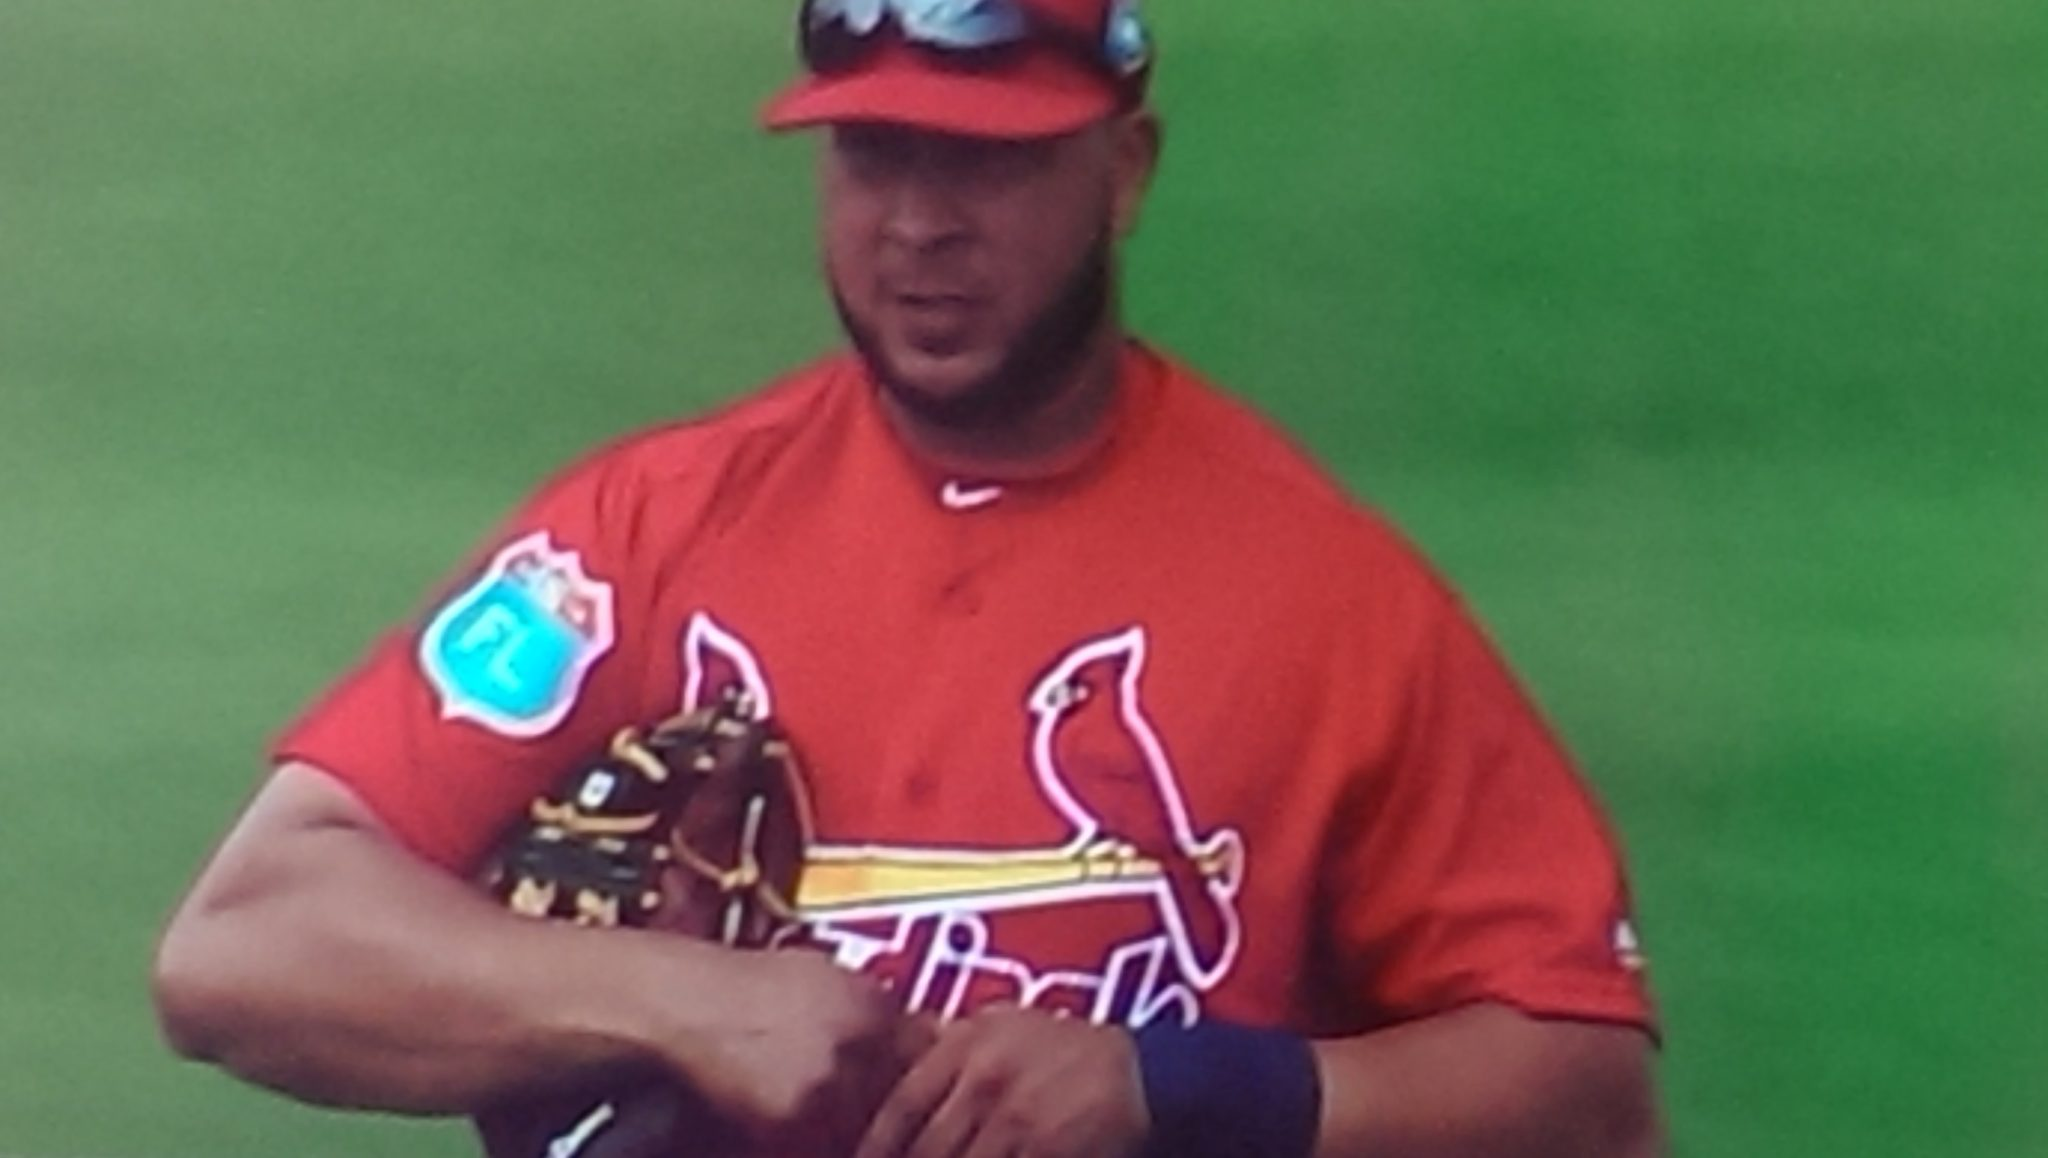 Cardinals Peralta likely out 2-3 months with thumb injury